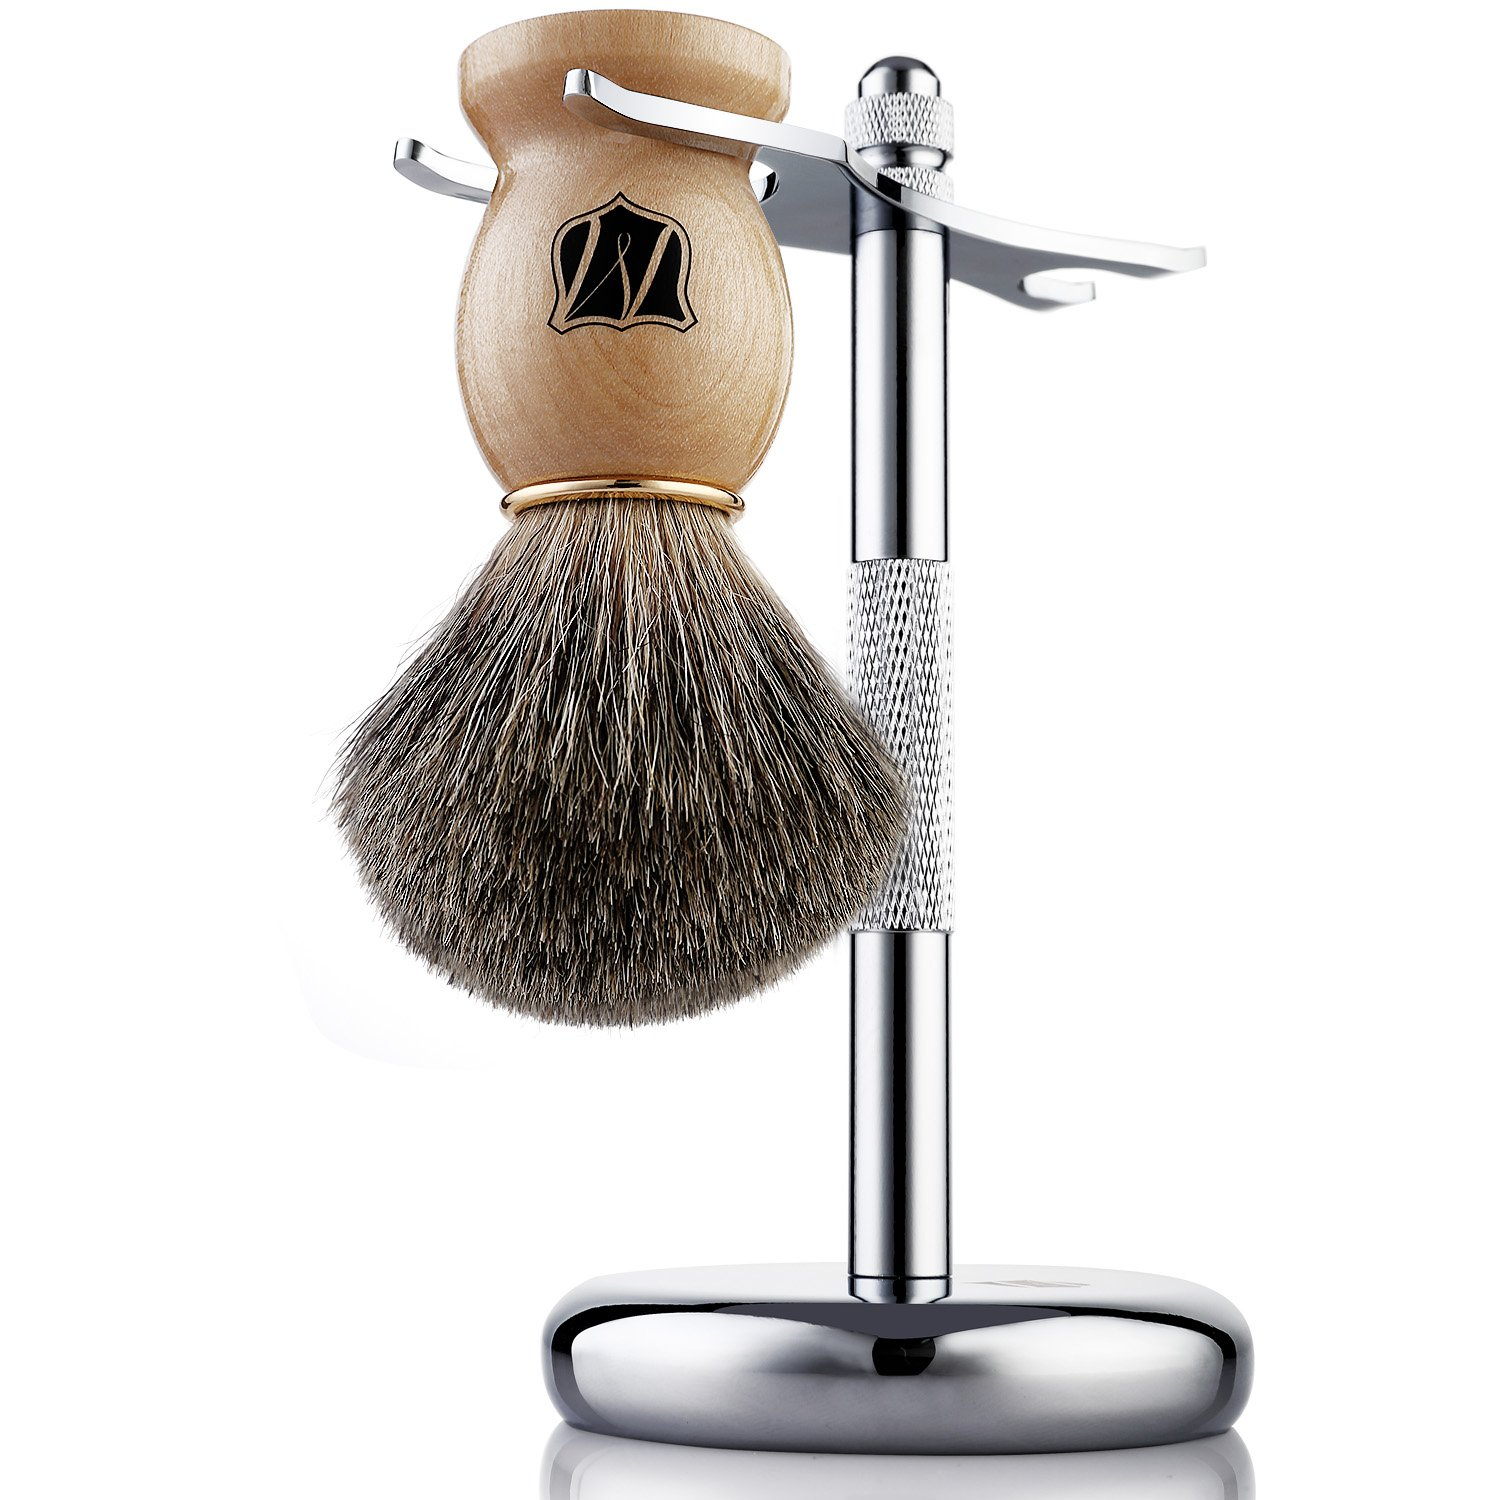 Miusco Badger Hair Shaving Brush and Shaving Stand Set, Chrome Stand, Wooden Brush